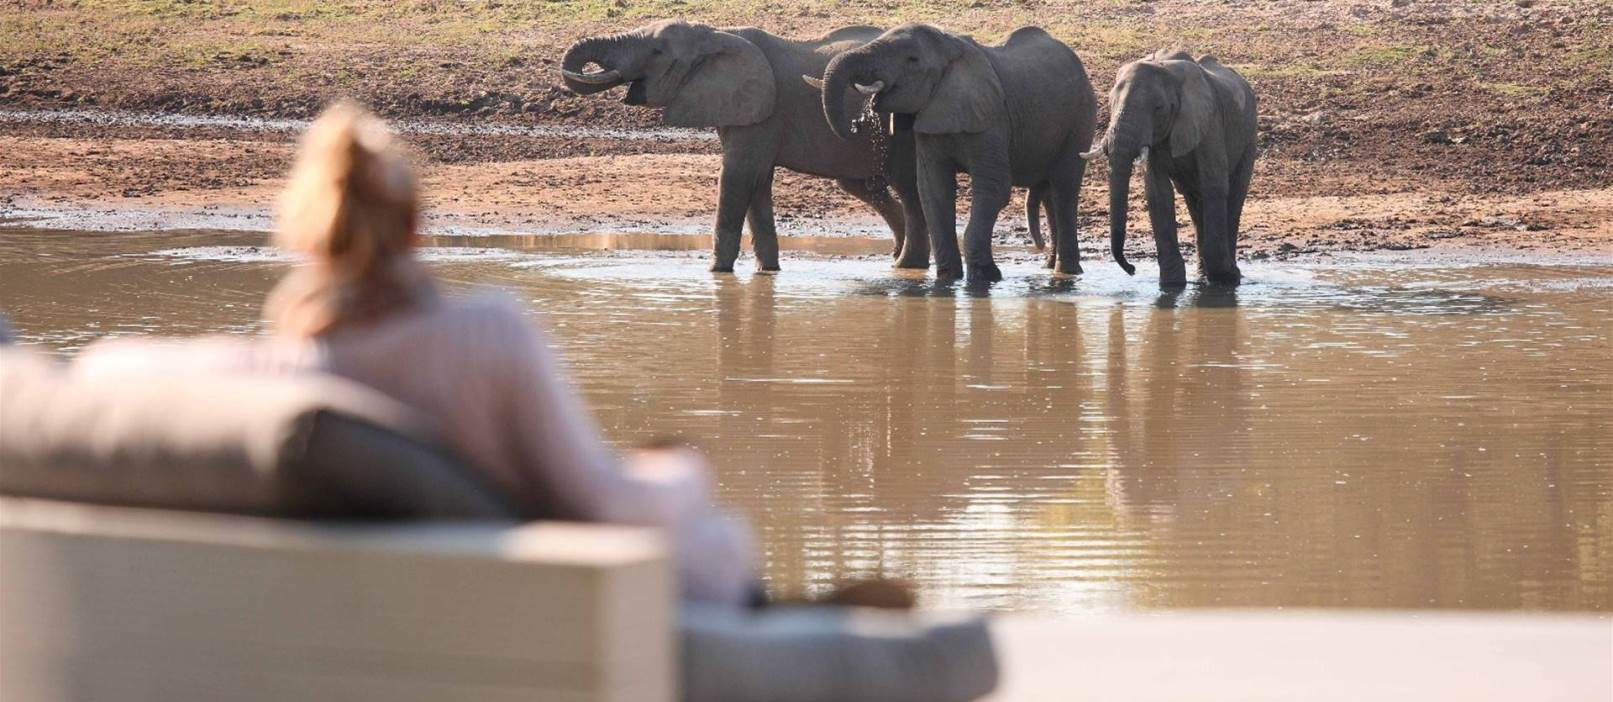 Elephants at the watering hole in Luangwa